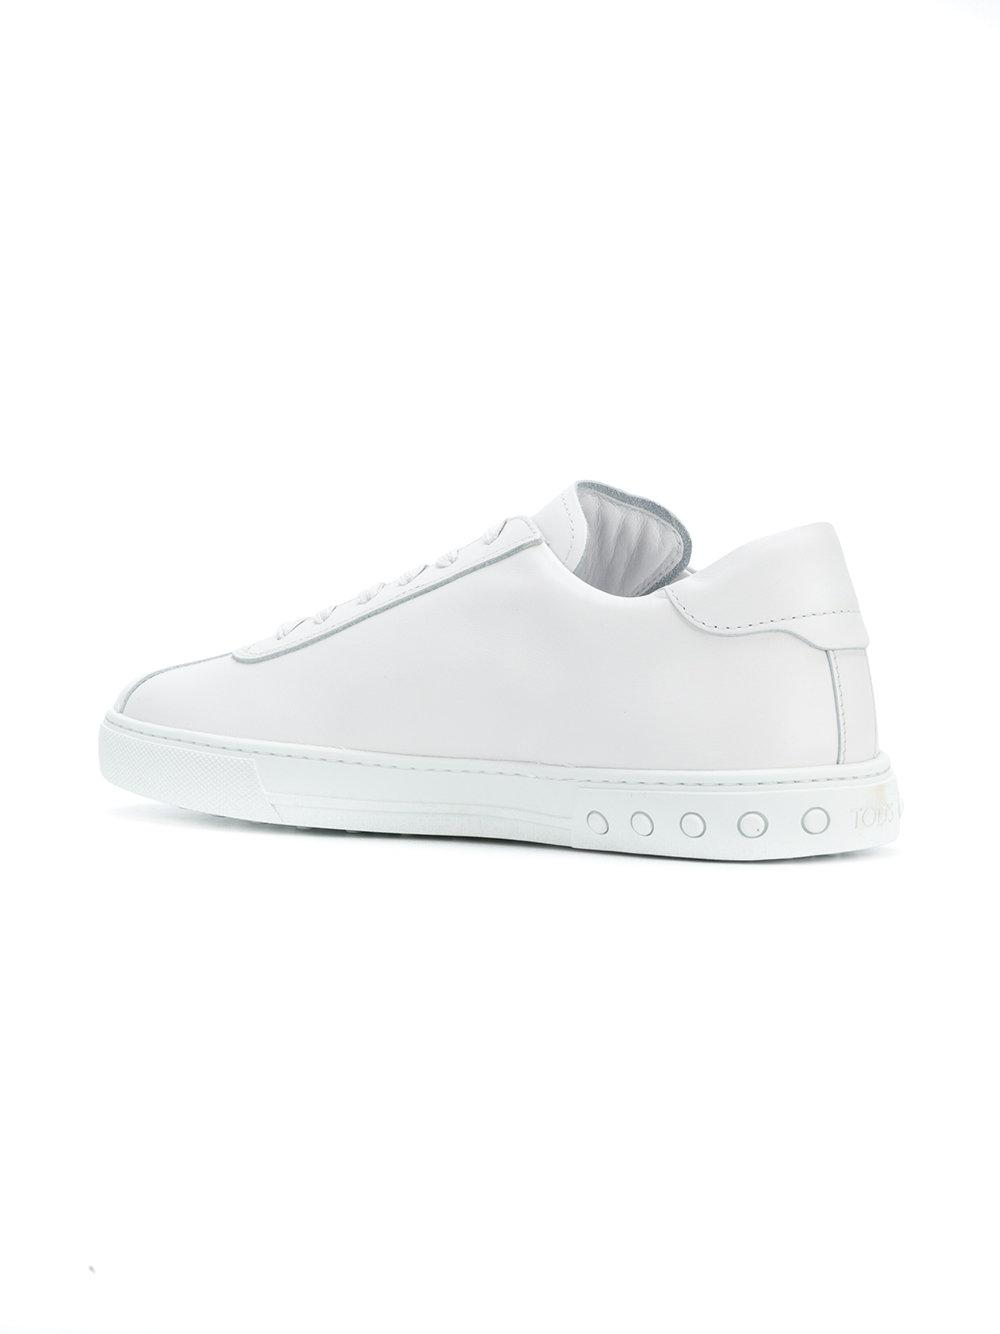 separation shoes bb448 d331b tods-White-Logo-applique-Lace-up-Sneakers.jpeg